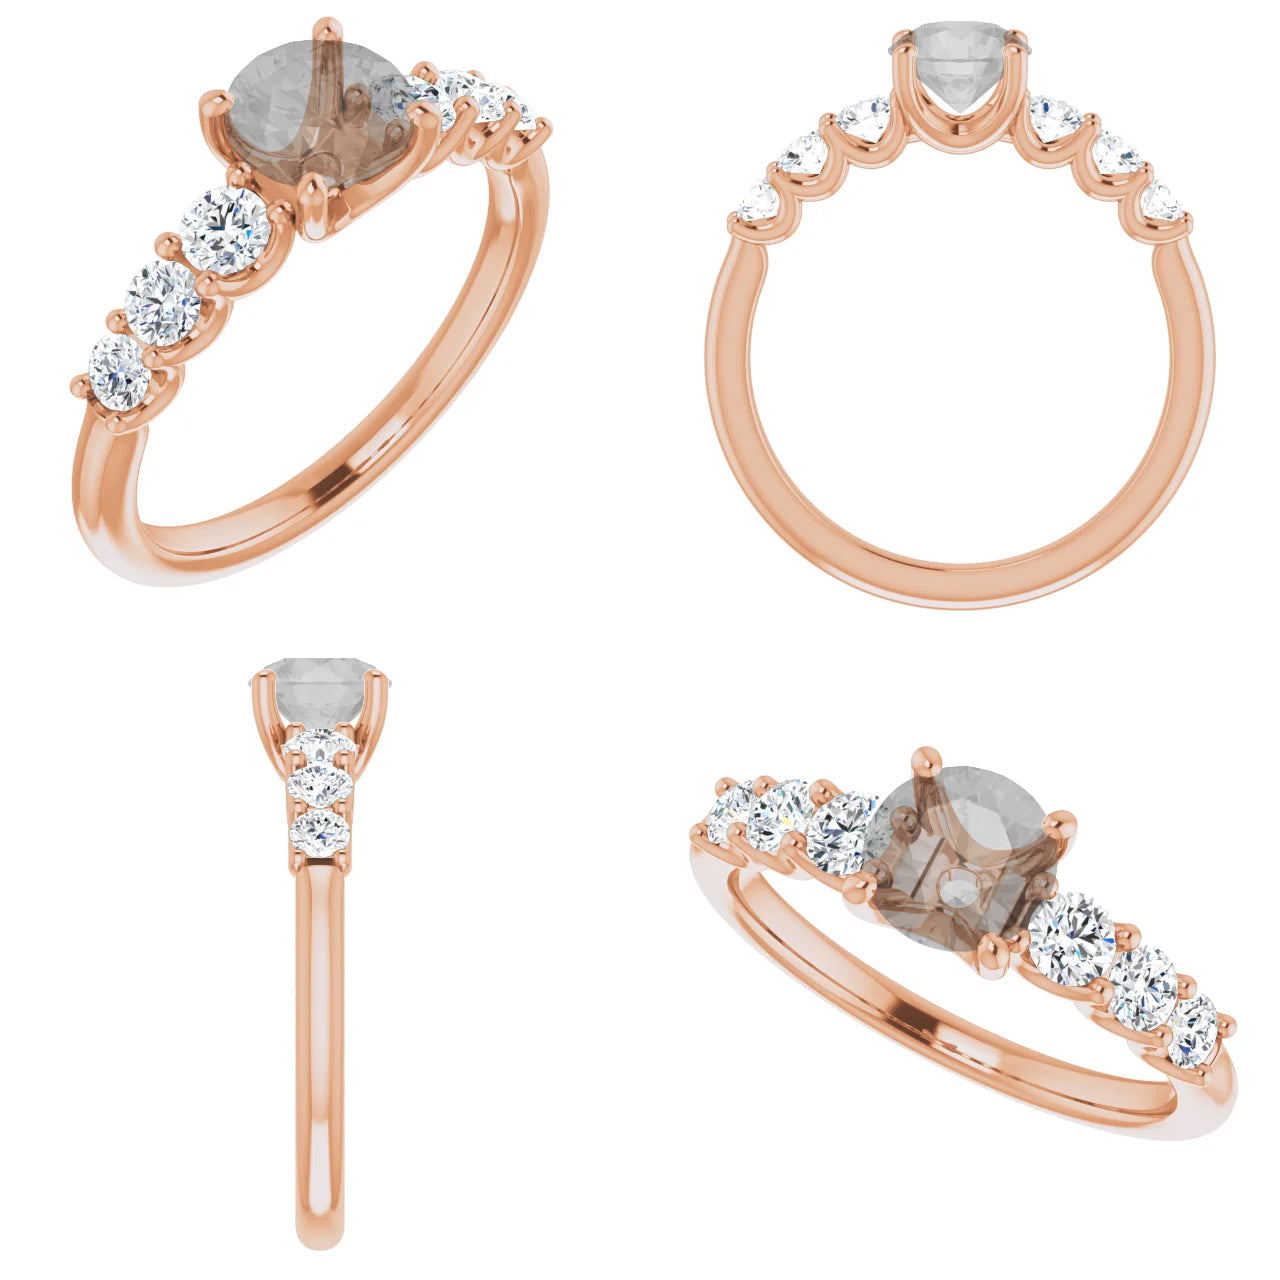 Nina Setting - Salt & Pepper Celestial Diamond Engagement Rings and Wedding Bands  by Midwinter Co.